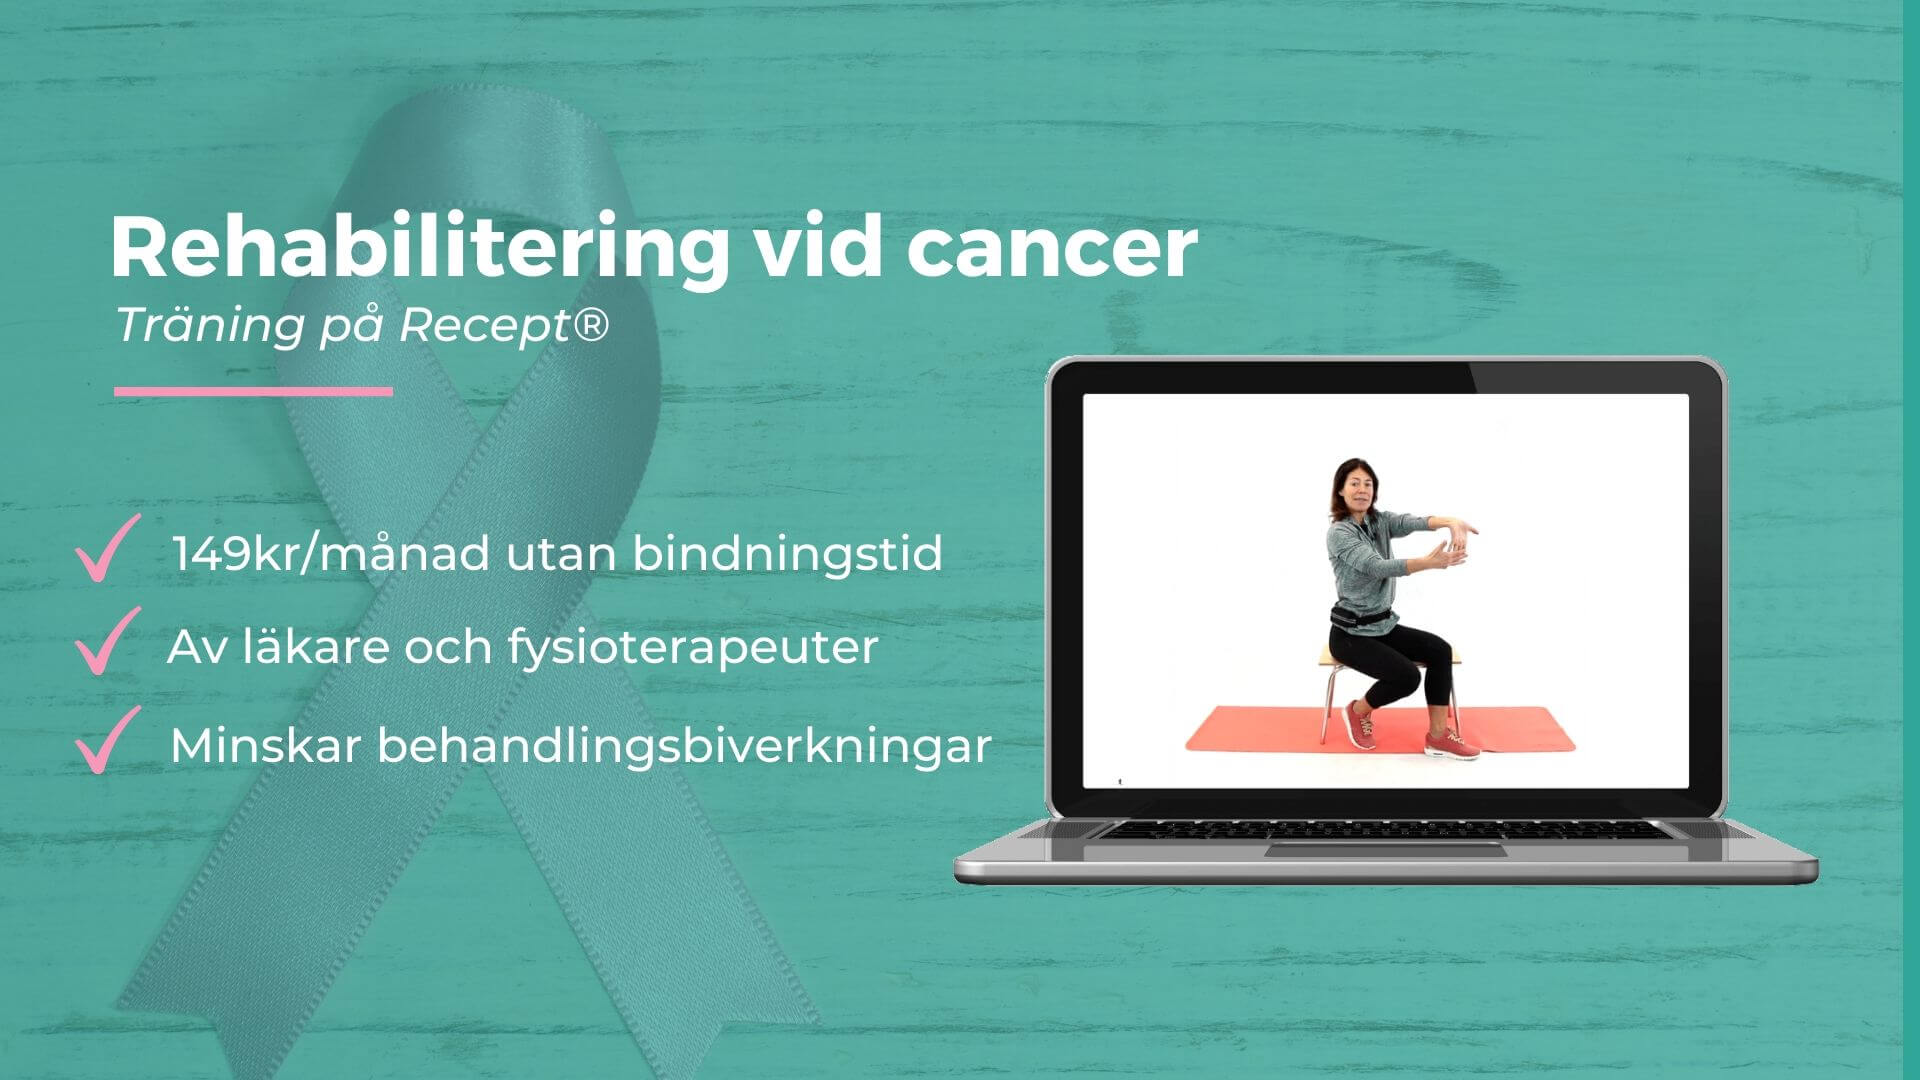 Rehabilitering vid cancer